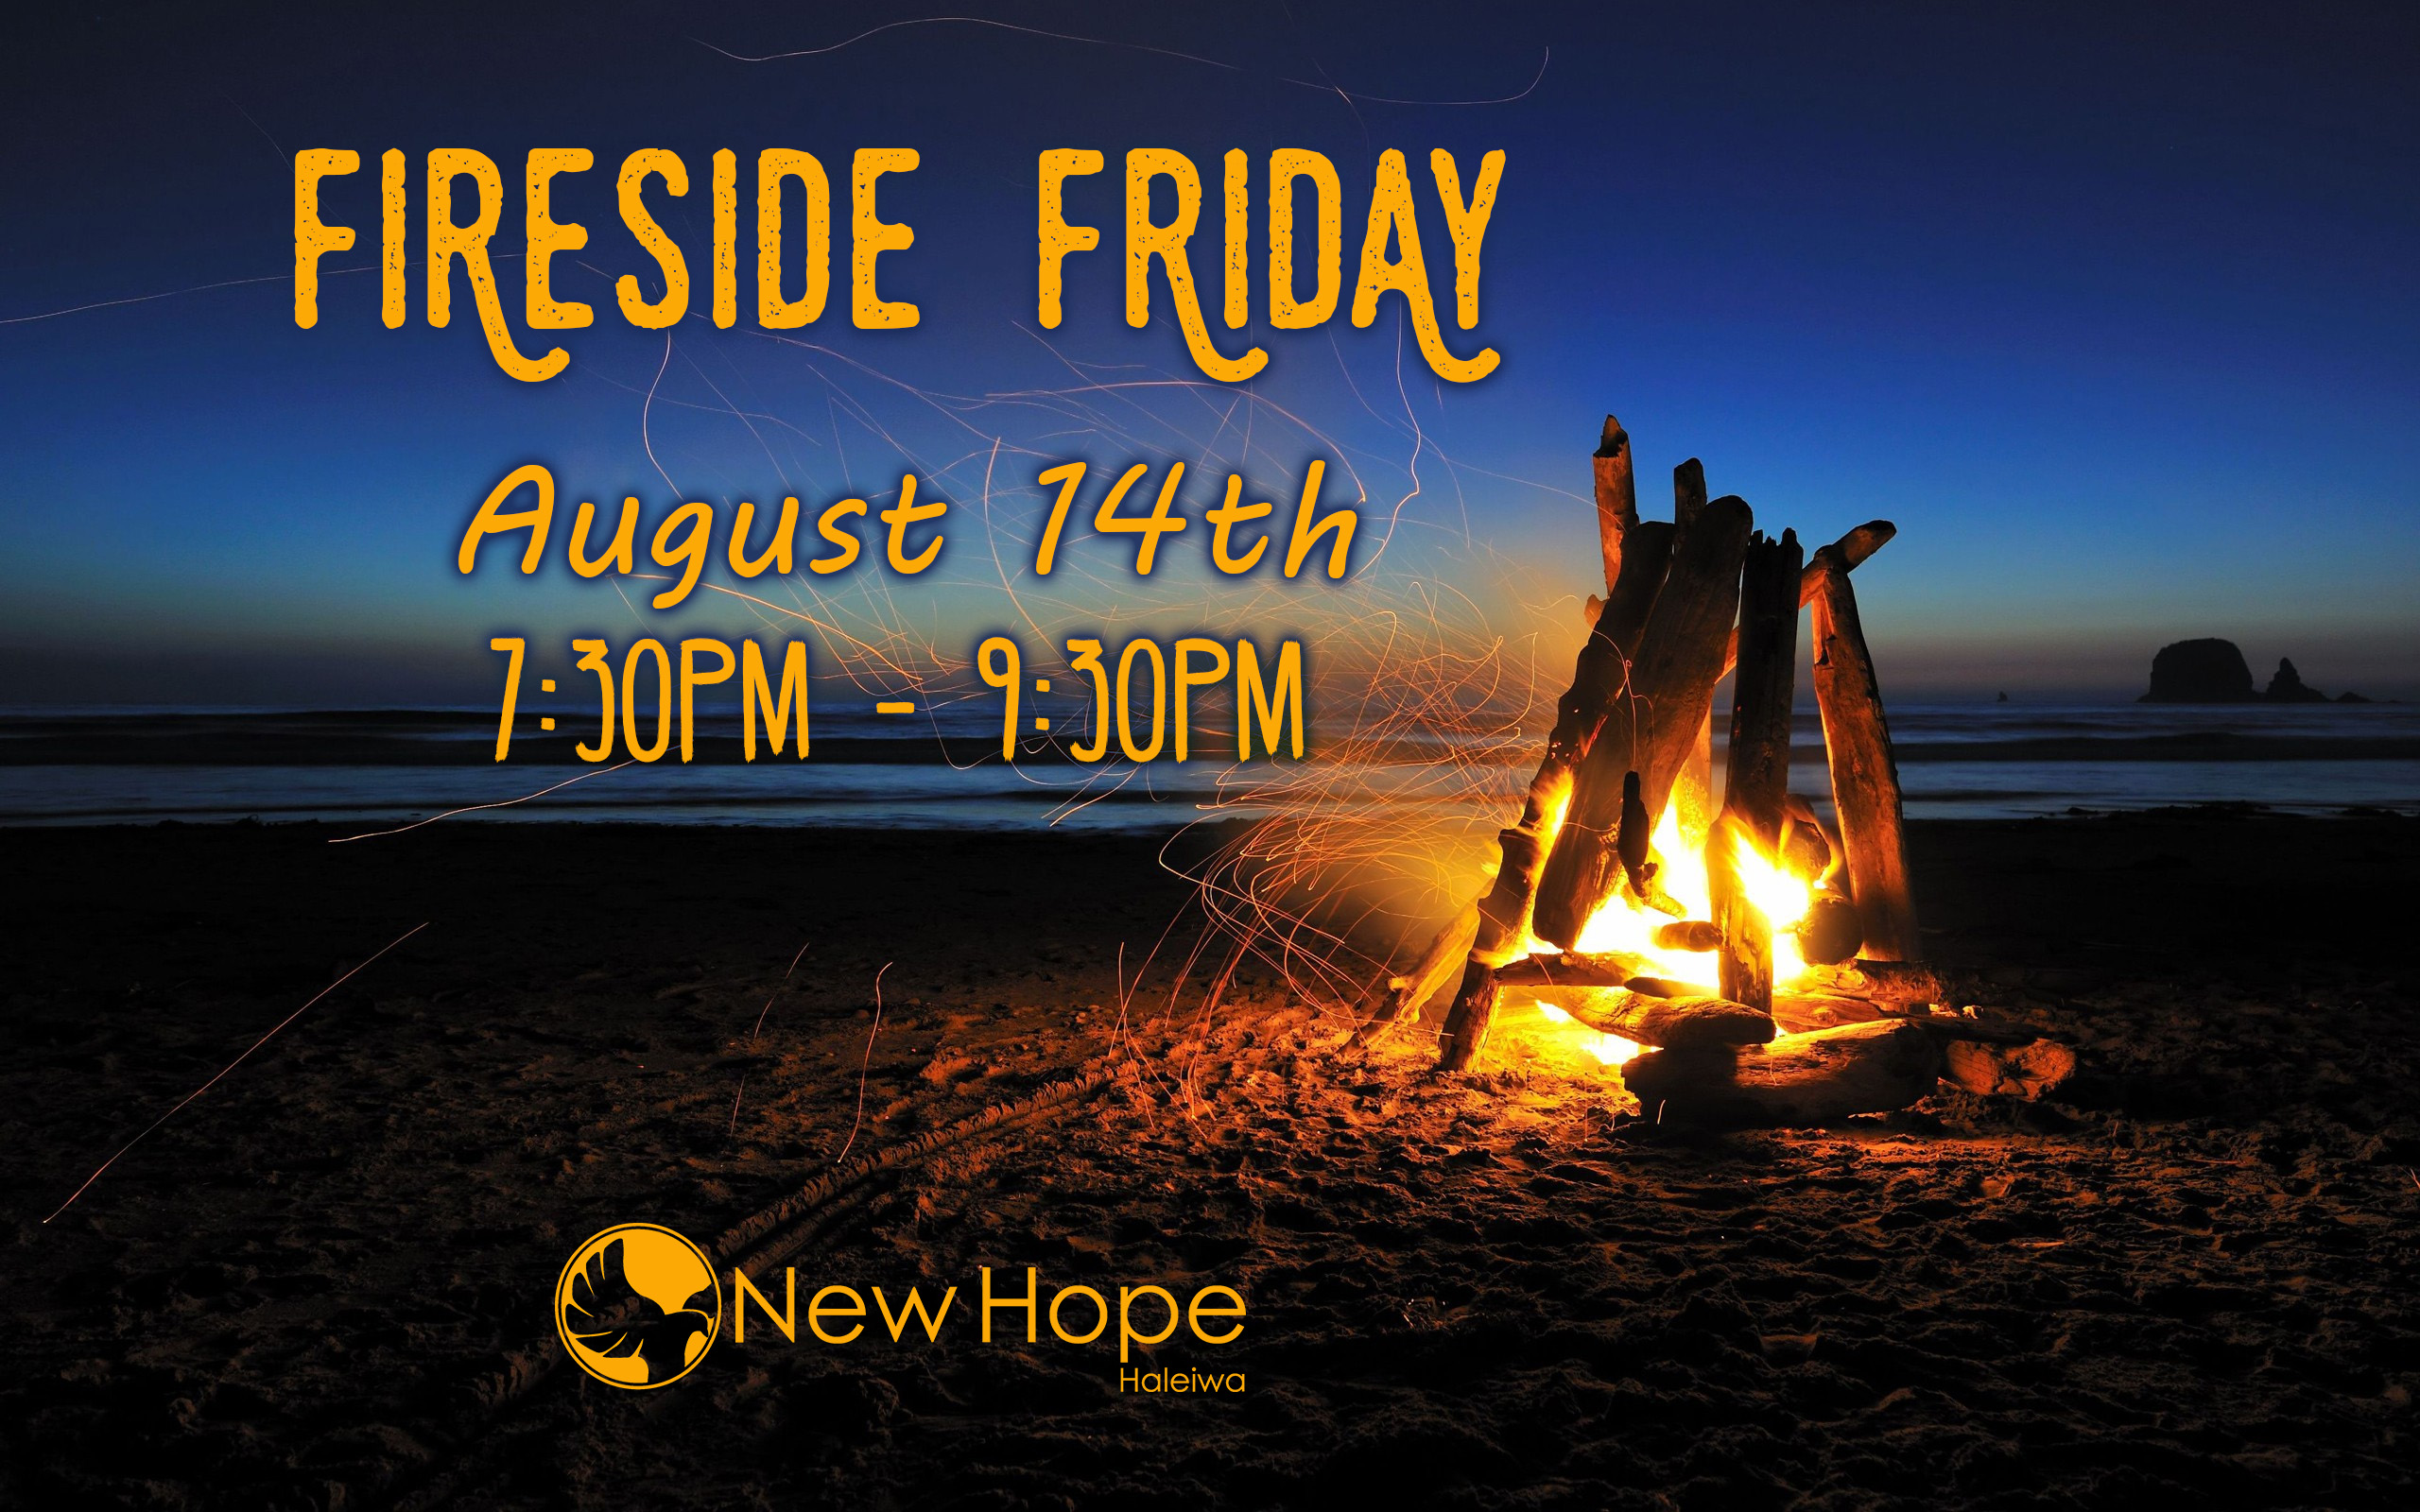 Fireside Friday Announcement